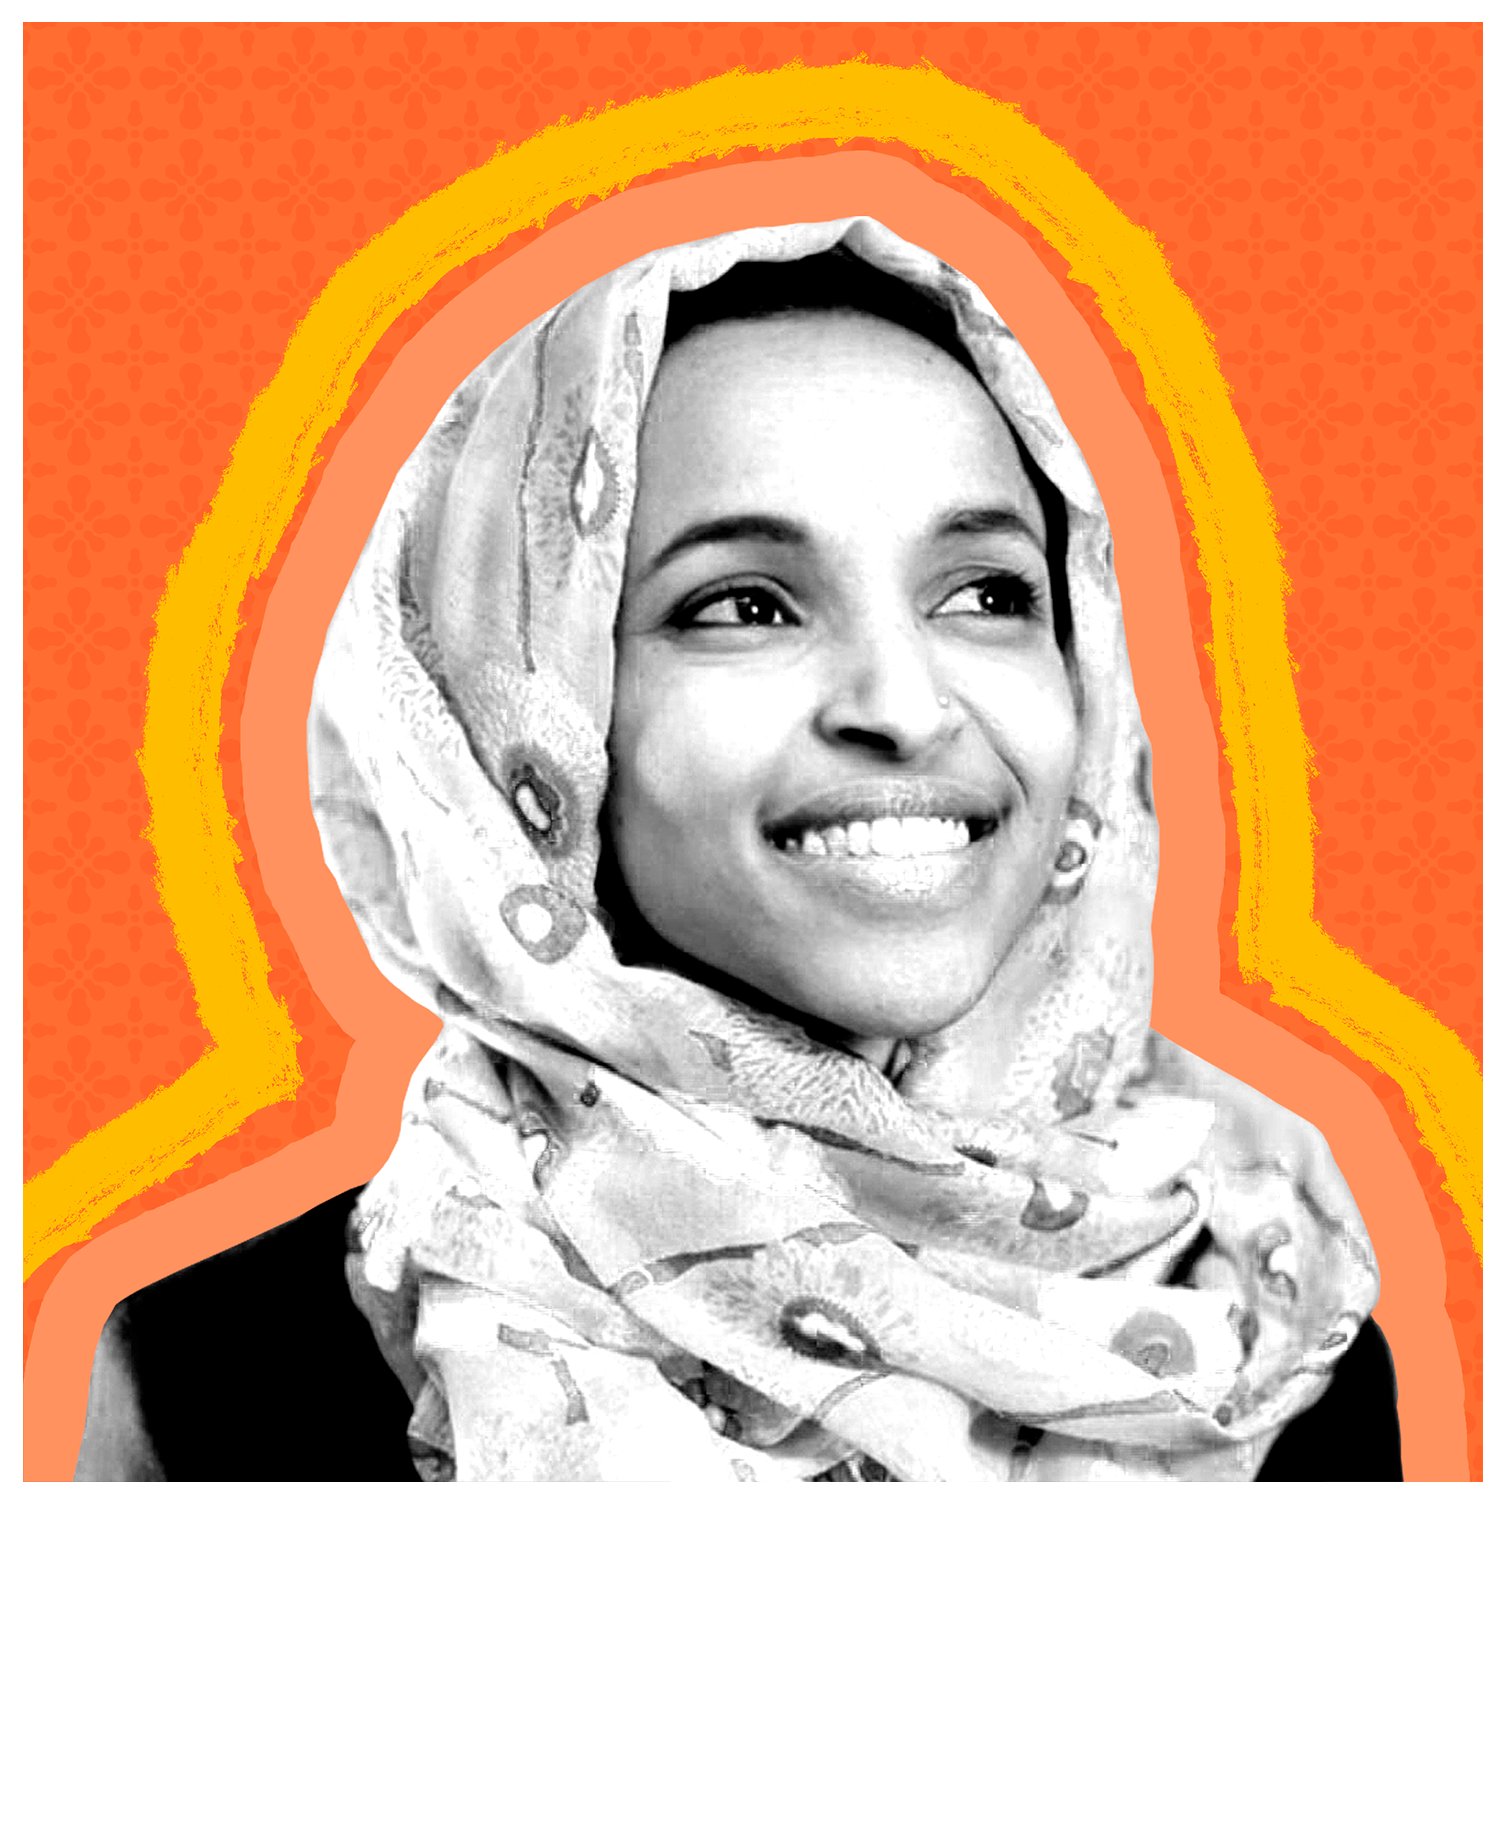 08262019---UWDA-Endorsement-Graphic-IlhanOmar-Slide-v2